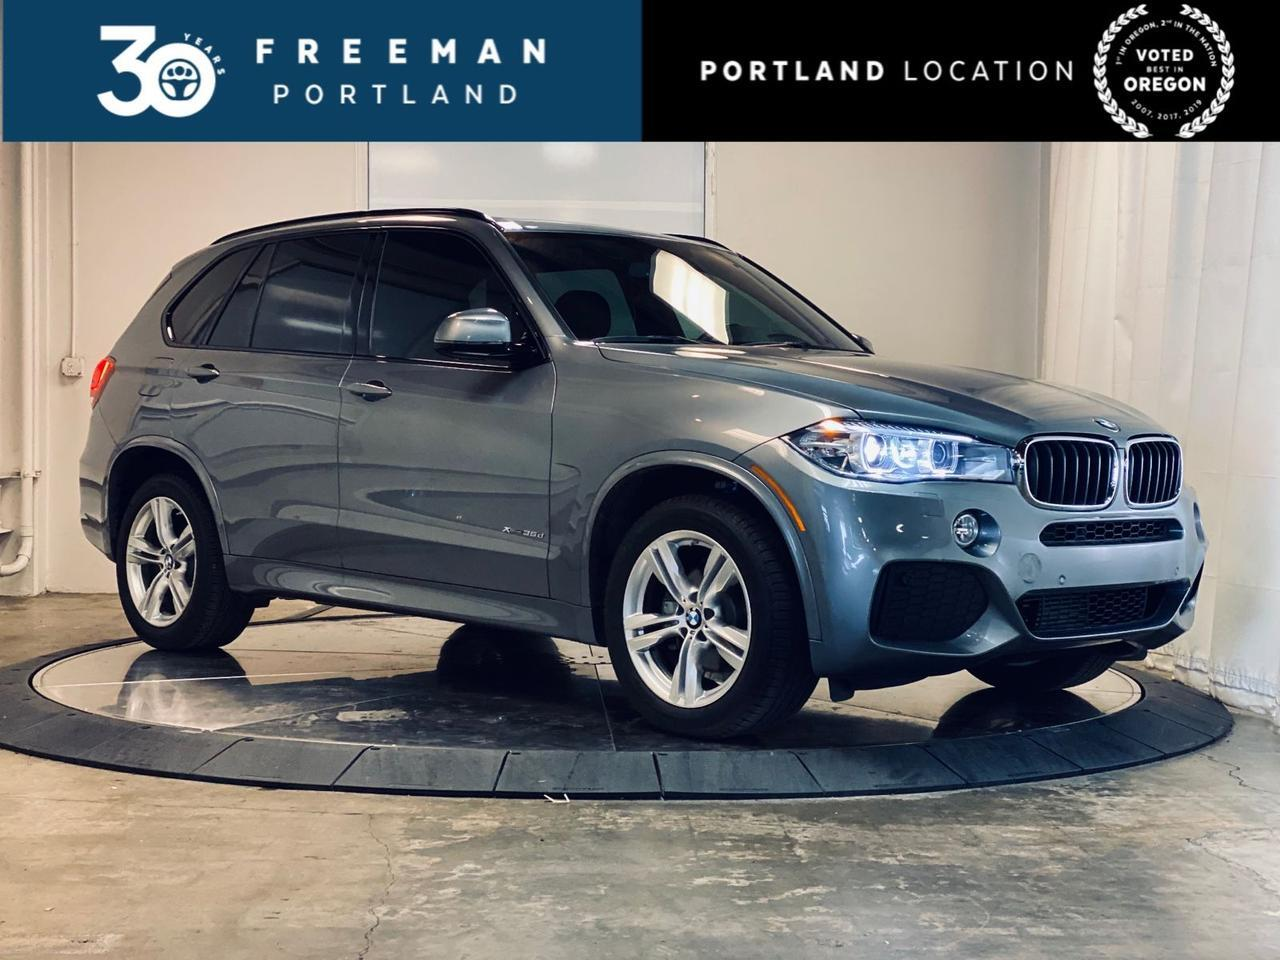 2017 BMW X5 xDrive35d M-Sport Diesel 3rd Row Seat Head-UP Display Portland OR